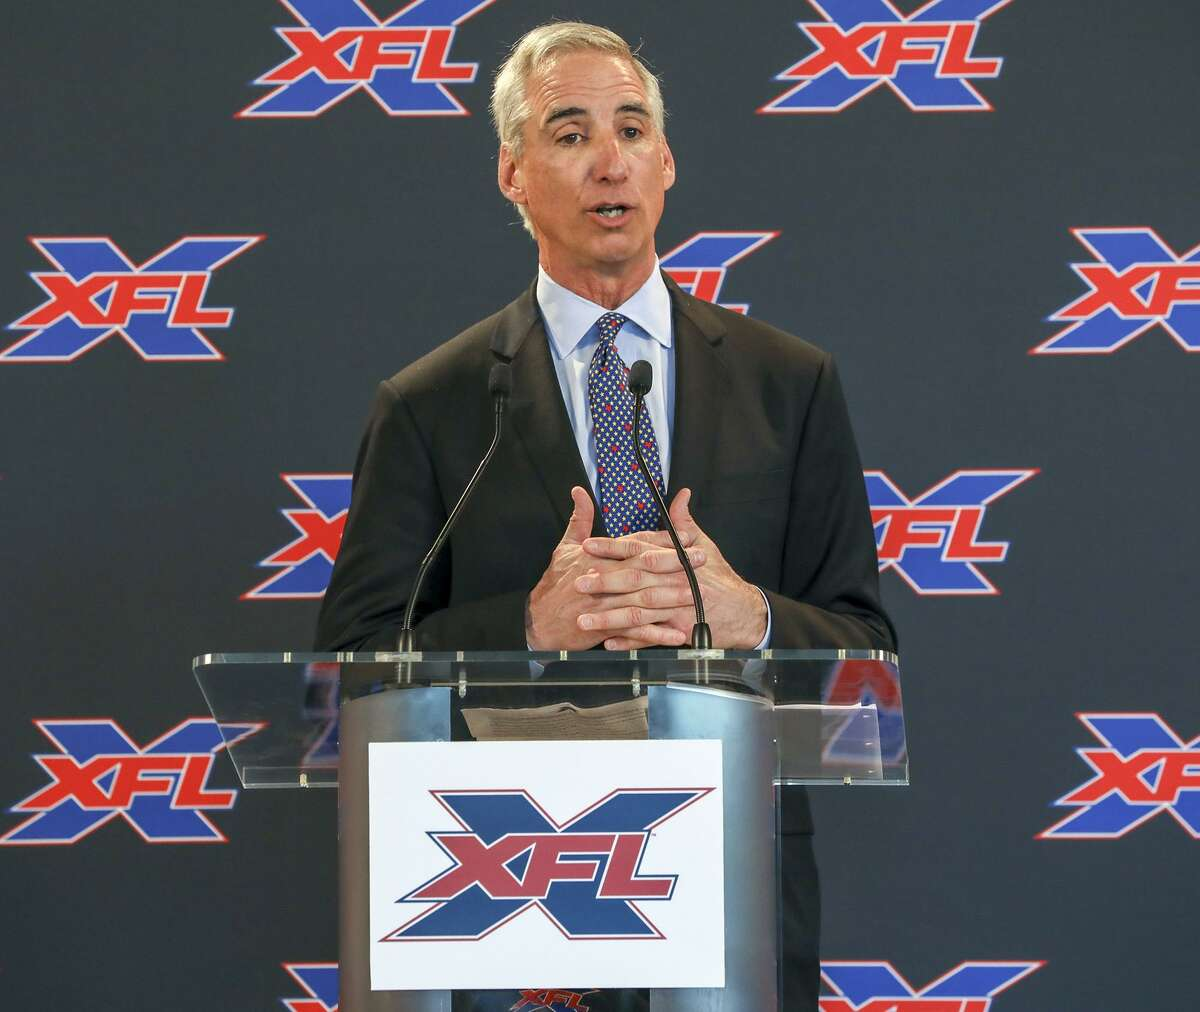 XFL Commissioner and CEO Oliver Luck speaks during a news conference on Tuesday, March 5, 2019 at Raymond James Stadium in Tampa, Fla. Luck, along with others, spoke during the announcement that Marc Trestman was named head coach of the Tampa Bay XFL team. Trestman is a former head coach in the NFL and CFL. (Chris Urso/Tampa Bay Times/TNS)